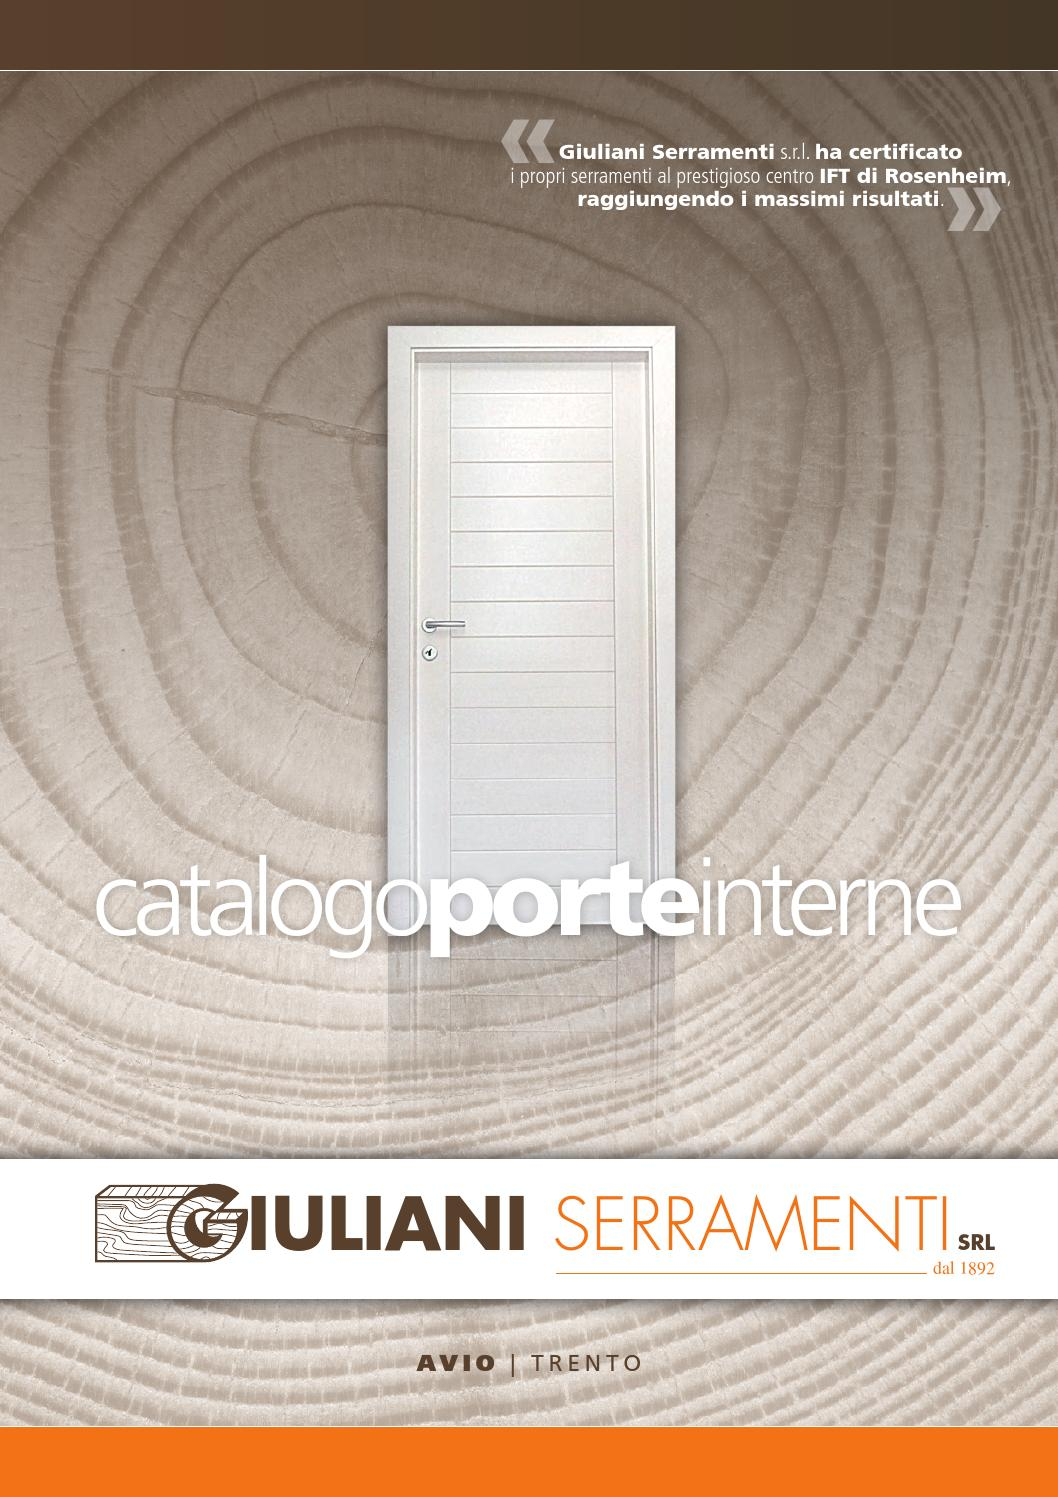 Giuliani catalogo porte interne by maccom internet for Porte marketing